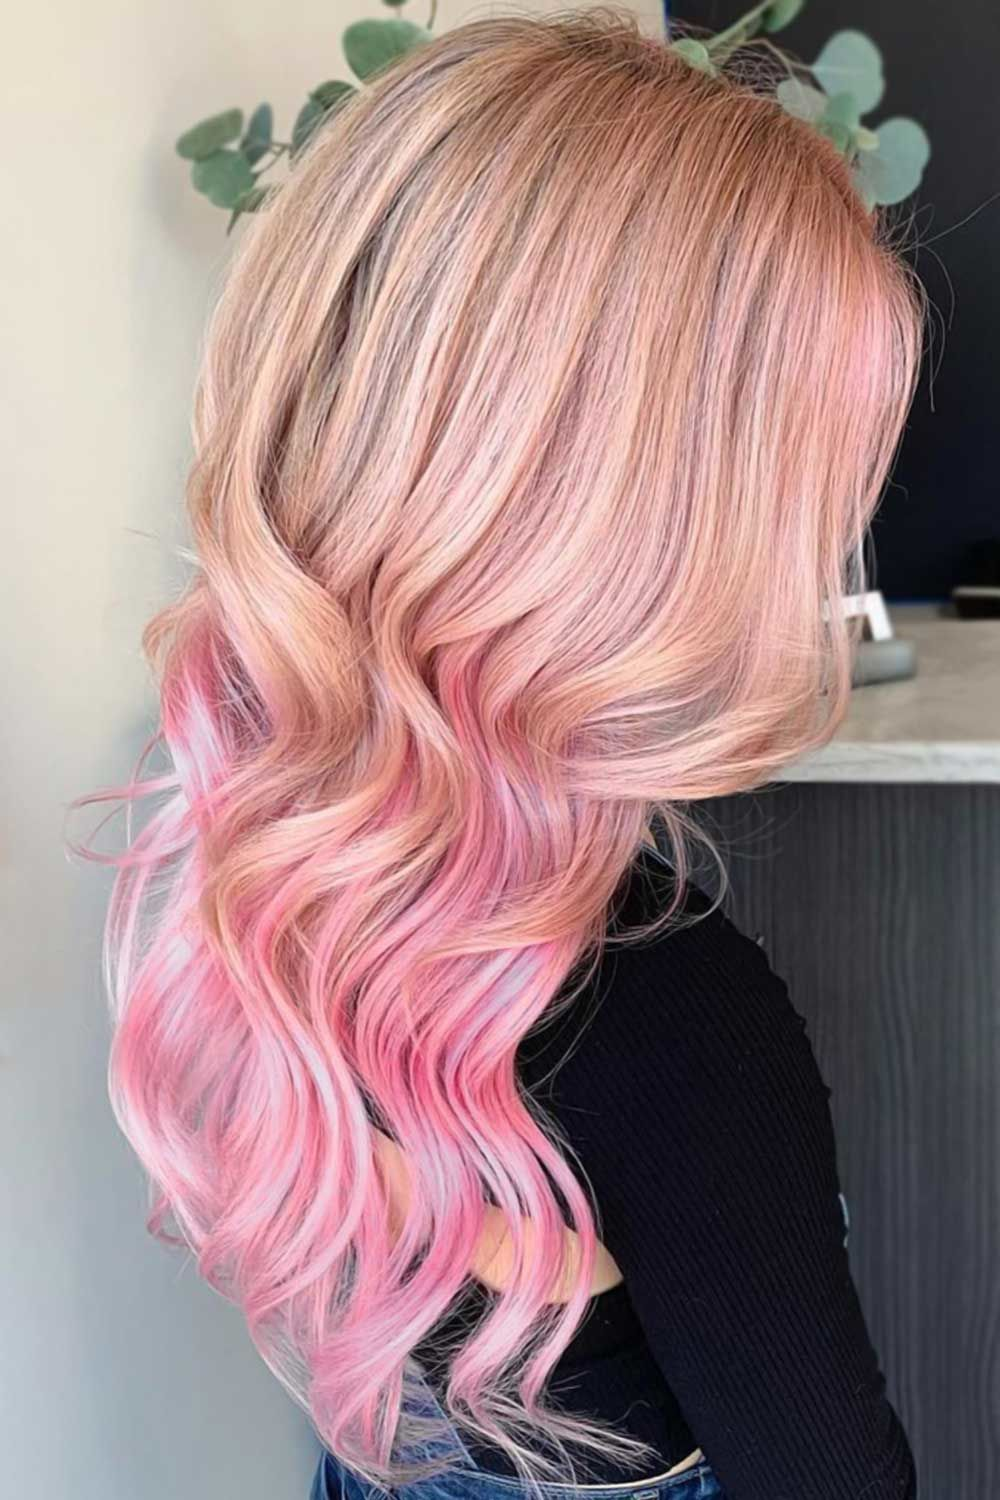 40 Adorable Ideas On How To Pull Off Pastel Pink Hair In 2020 Pastel Pink Hair Pink Blonde Hair Highlights Underneath Hair